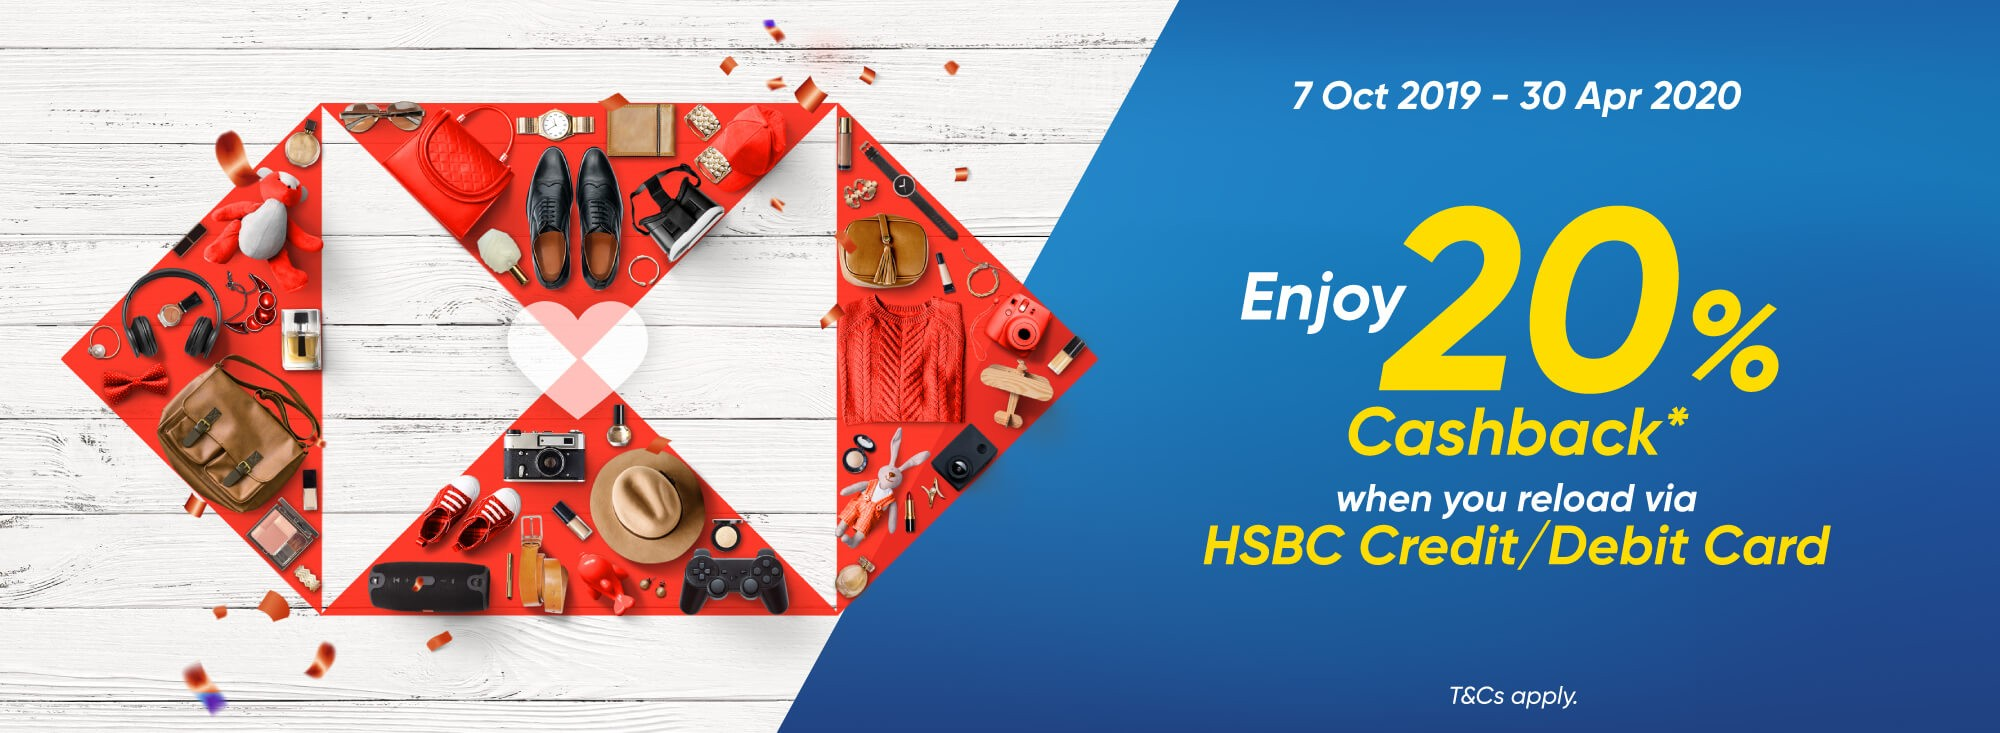 HSBC Is Rewarding Cardholders For Using E-Wallets - Here's How To Earn 26.67% Returns